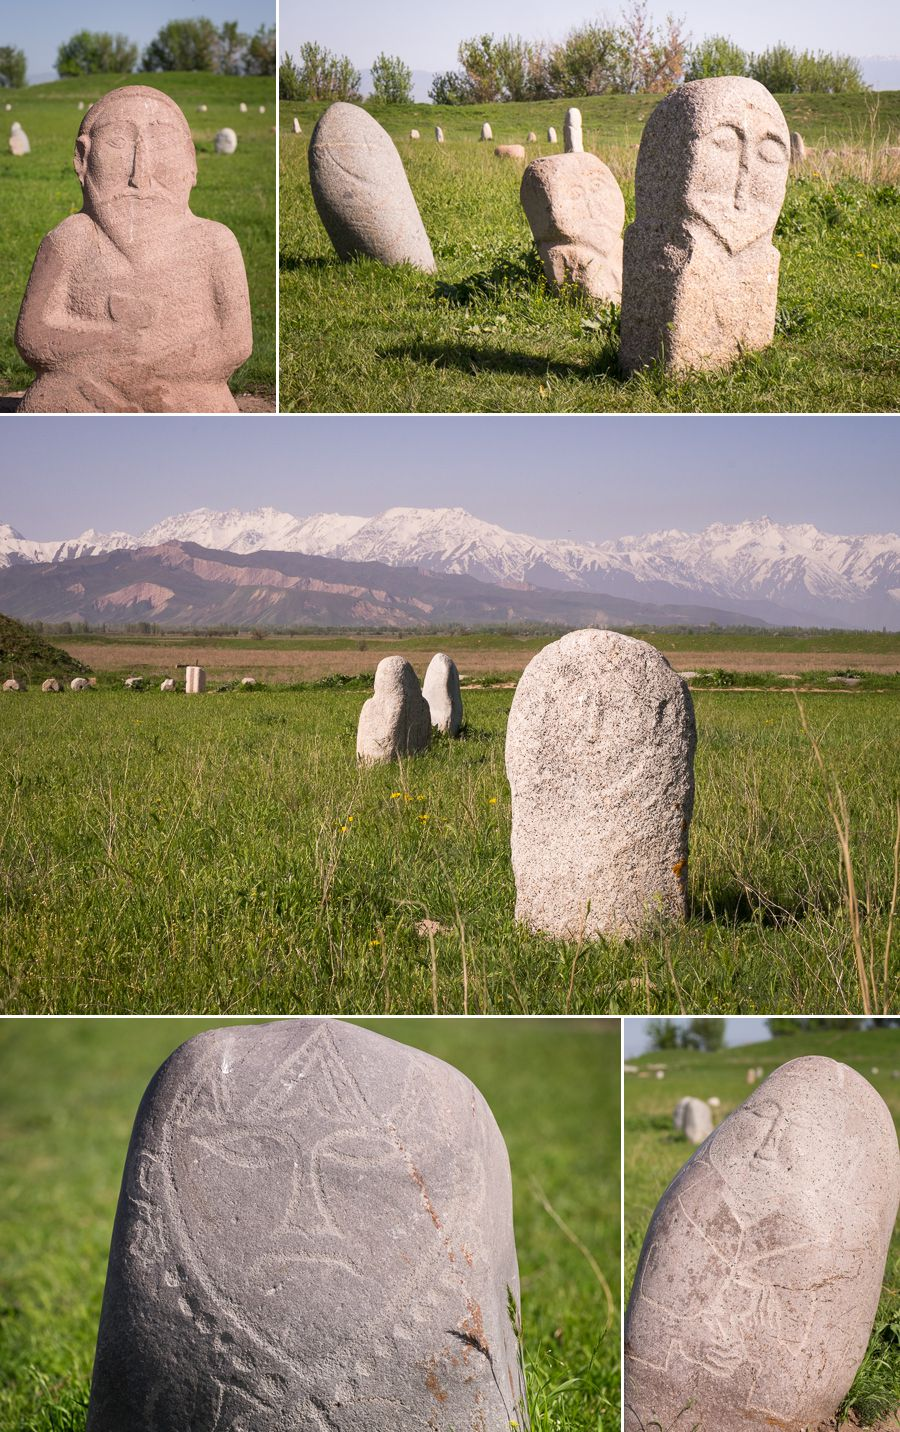 stone sculptures and monuments from the Turkic nomads - Buruna Tower - Kyrgyzstan